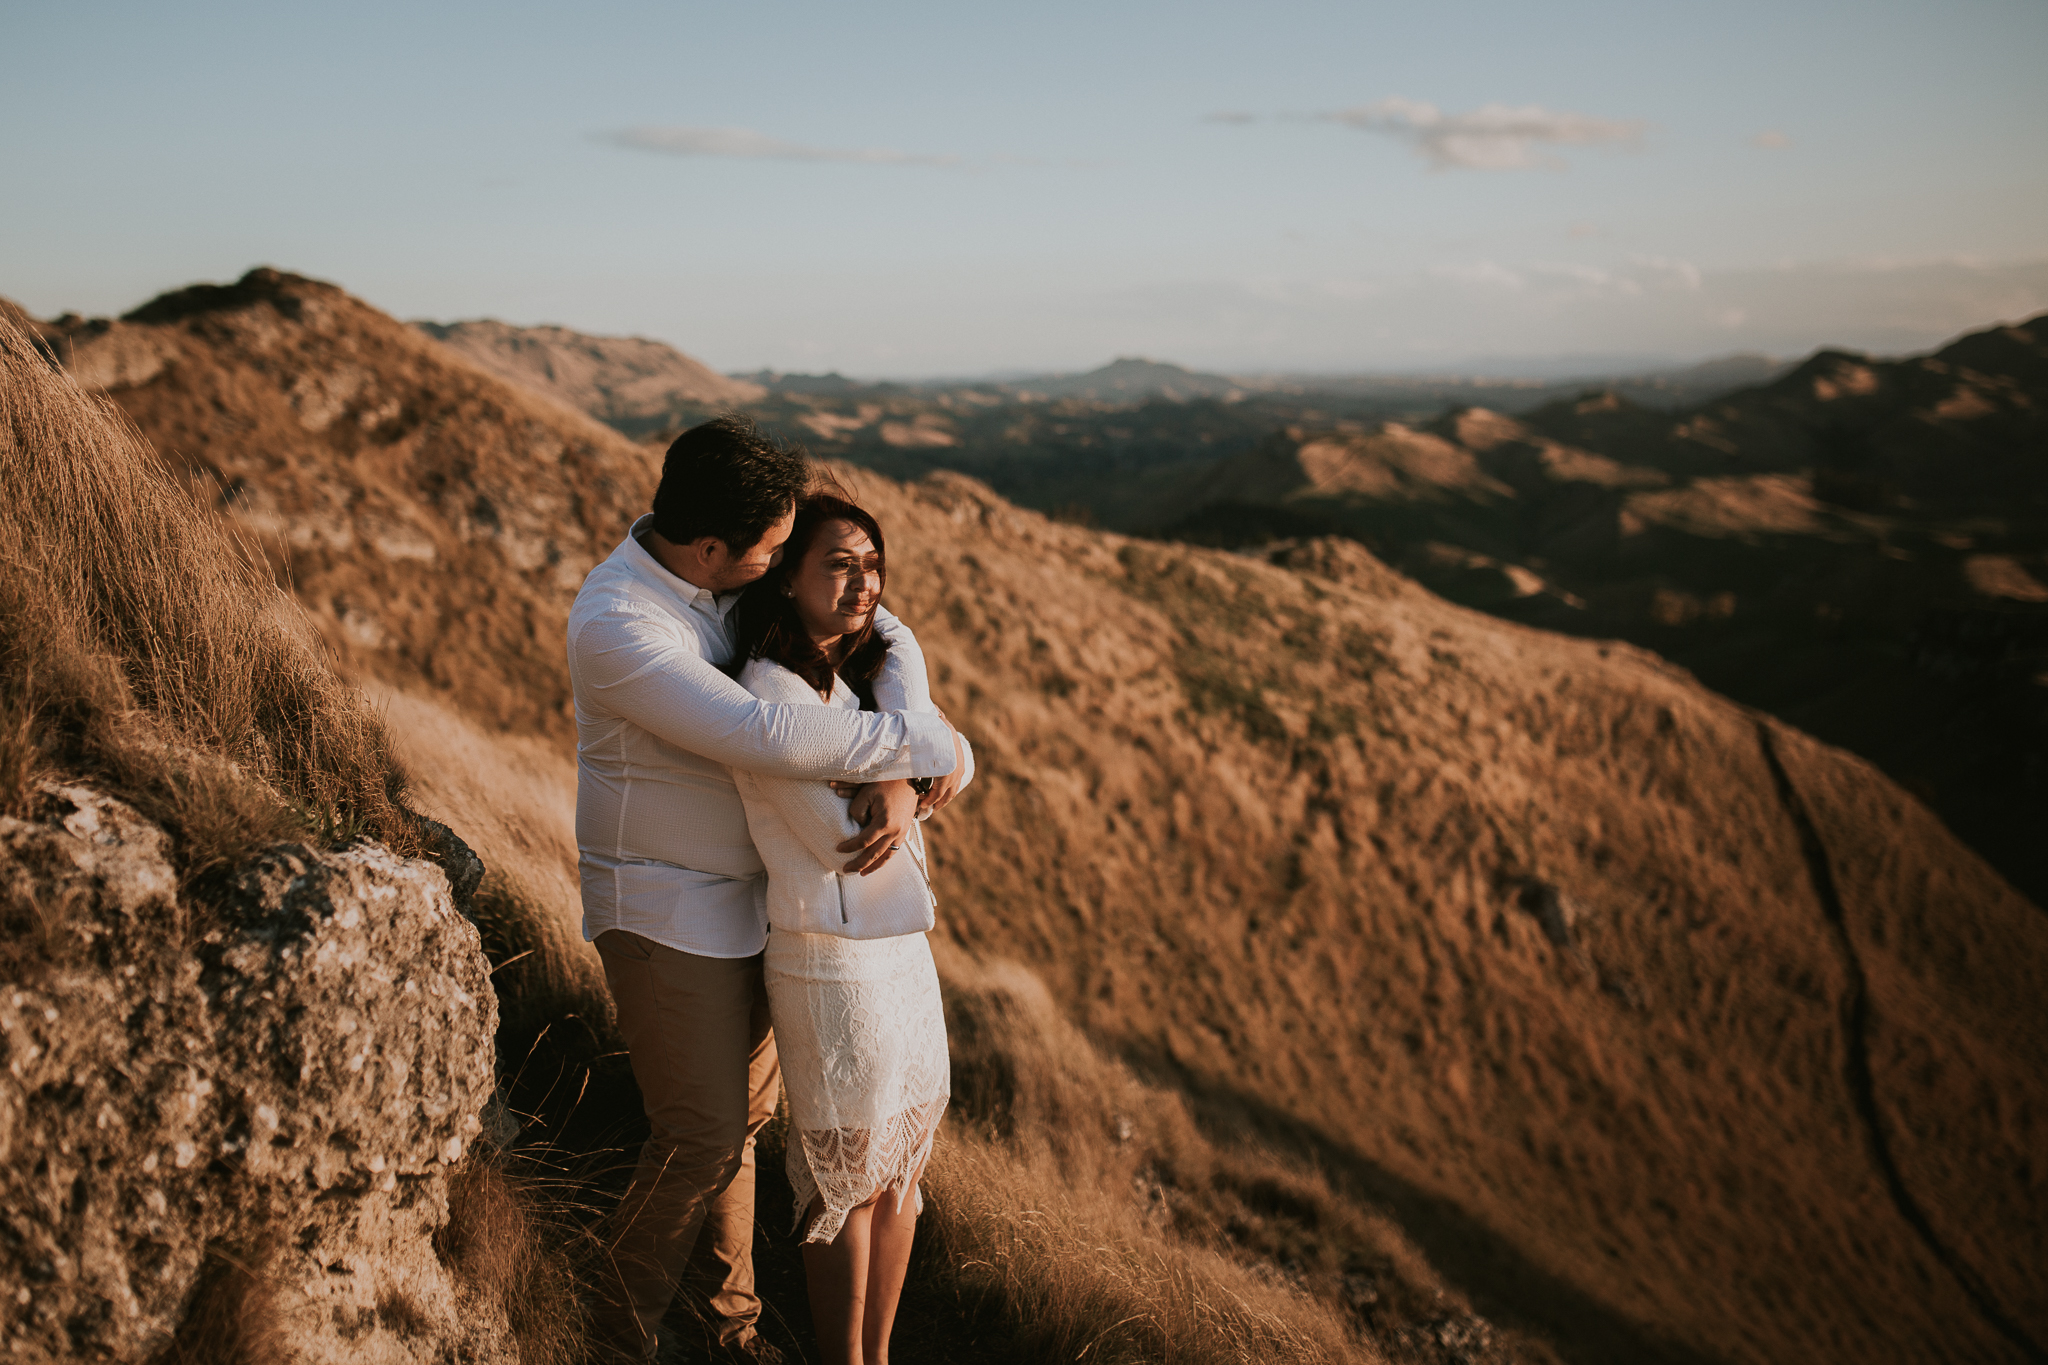 Wedding Photographers Hawkes Bay Te Mata Peak Engagement Shoot Sunset-11.jpg